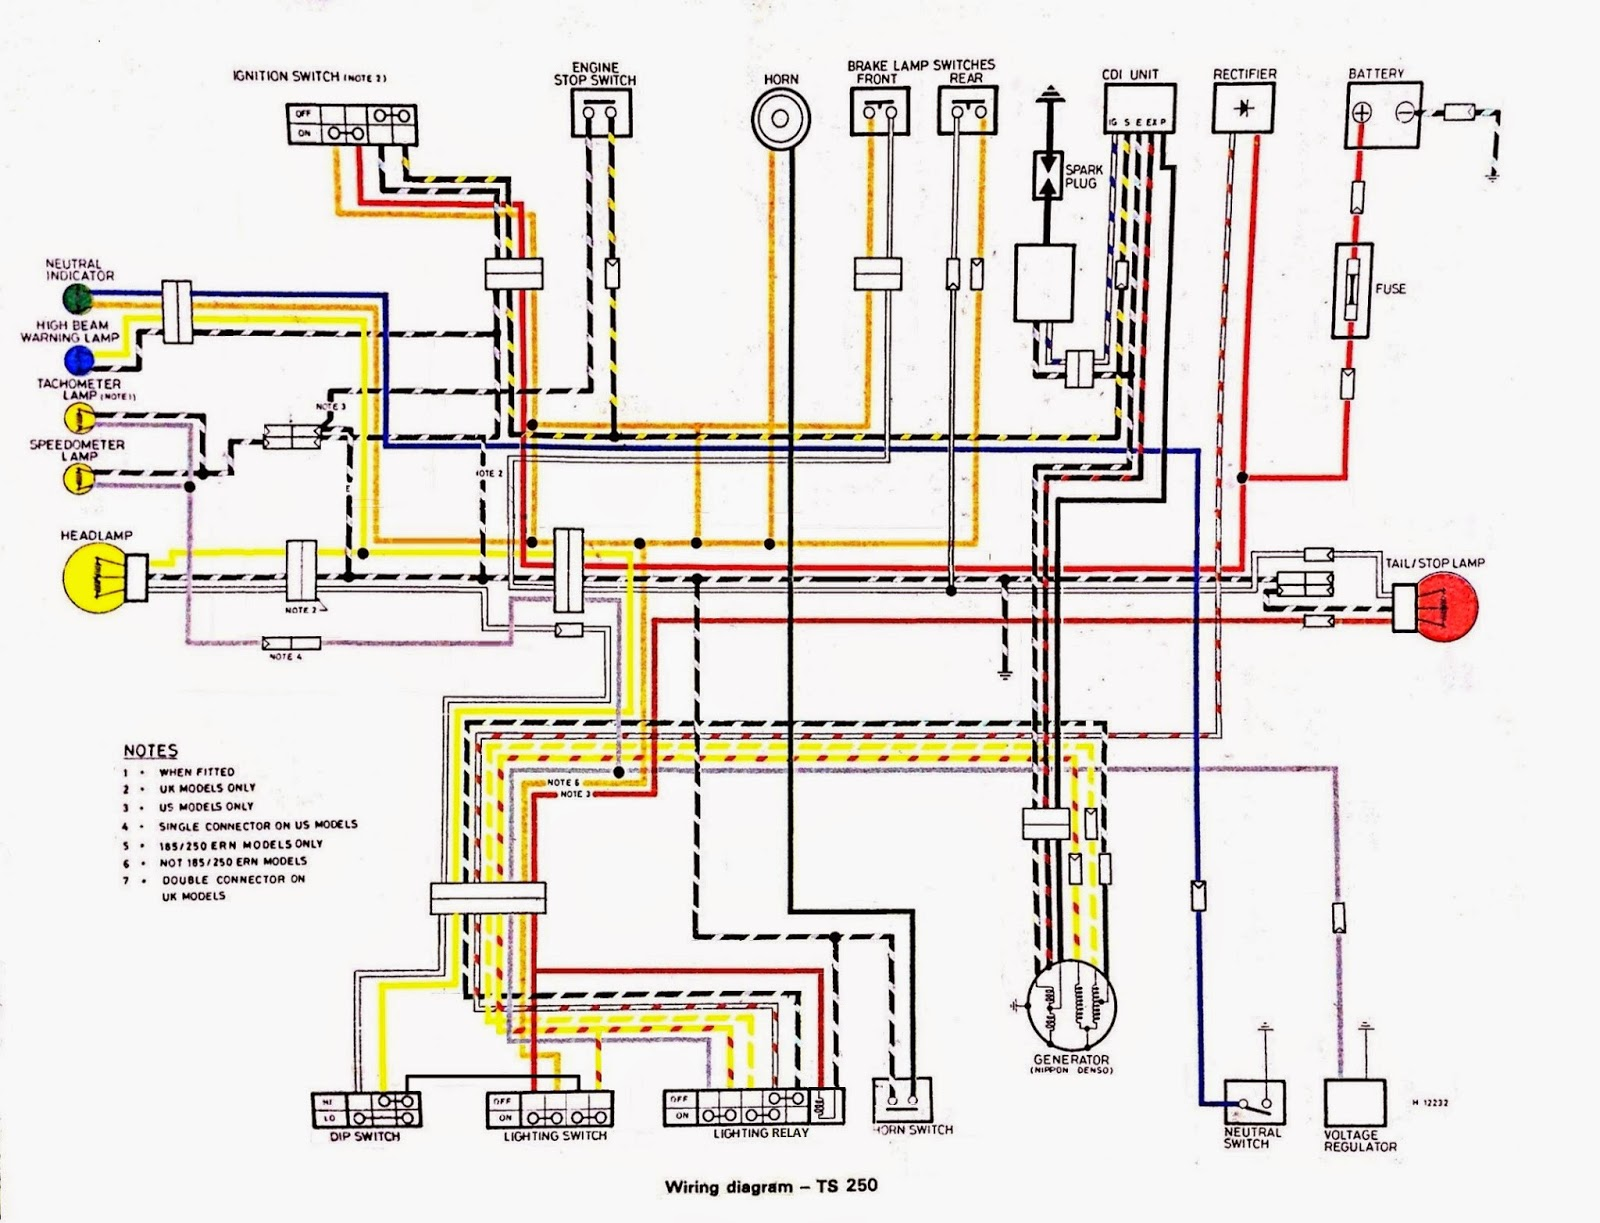 lt250r engine diagram wiring library detailedlt250r engine diagram wiring diagram write suzuki lt250r quadracer parts lt250r [ 1600 x 1223 Pixel ]